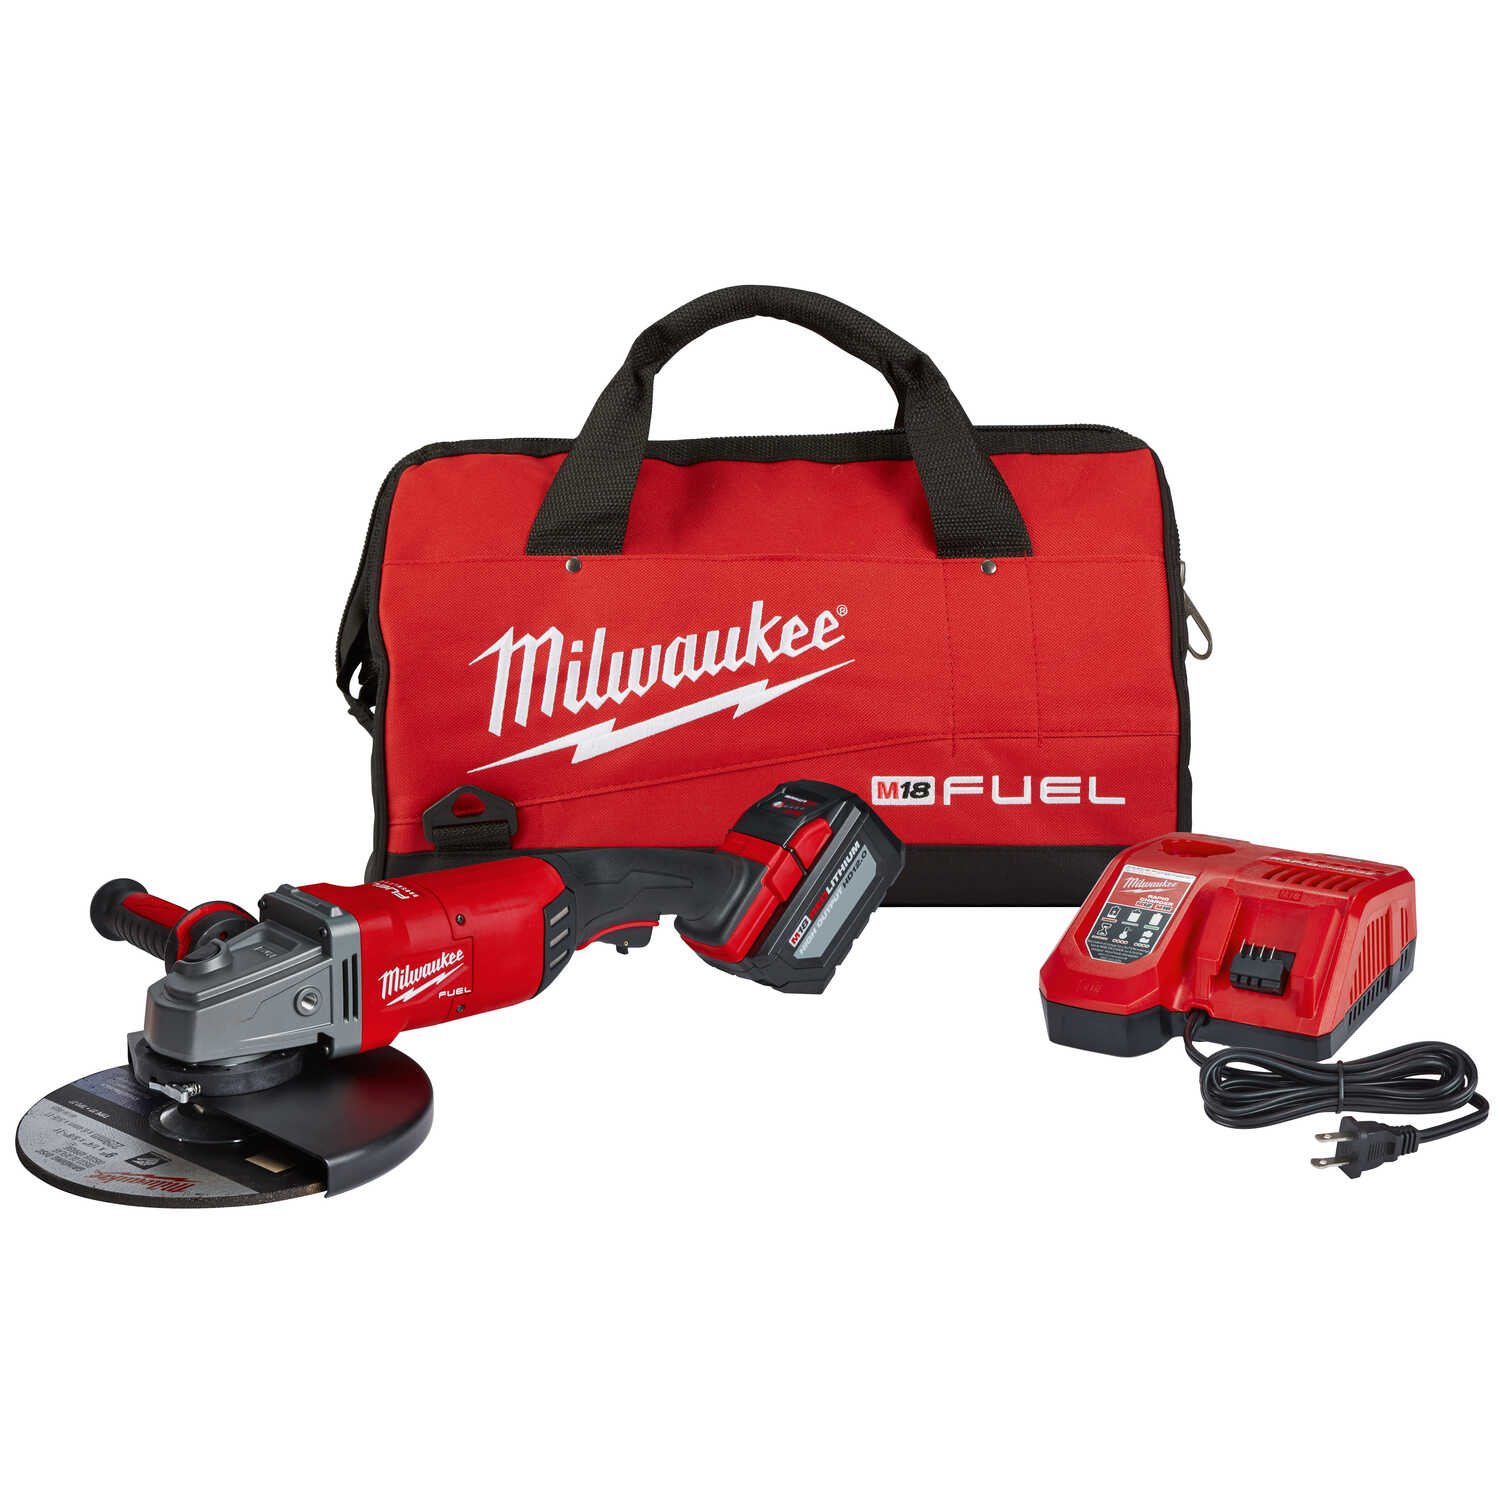 Milwaukee  M18 FUEL  7 to 9 in. 18 volt Cordless  Brushless Large Angle Grinder  Kit 6600 rpm